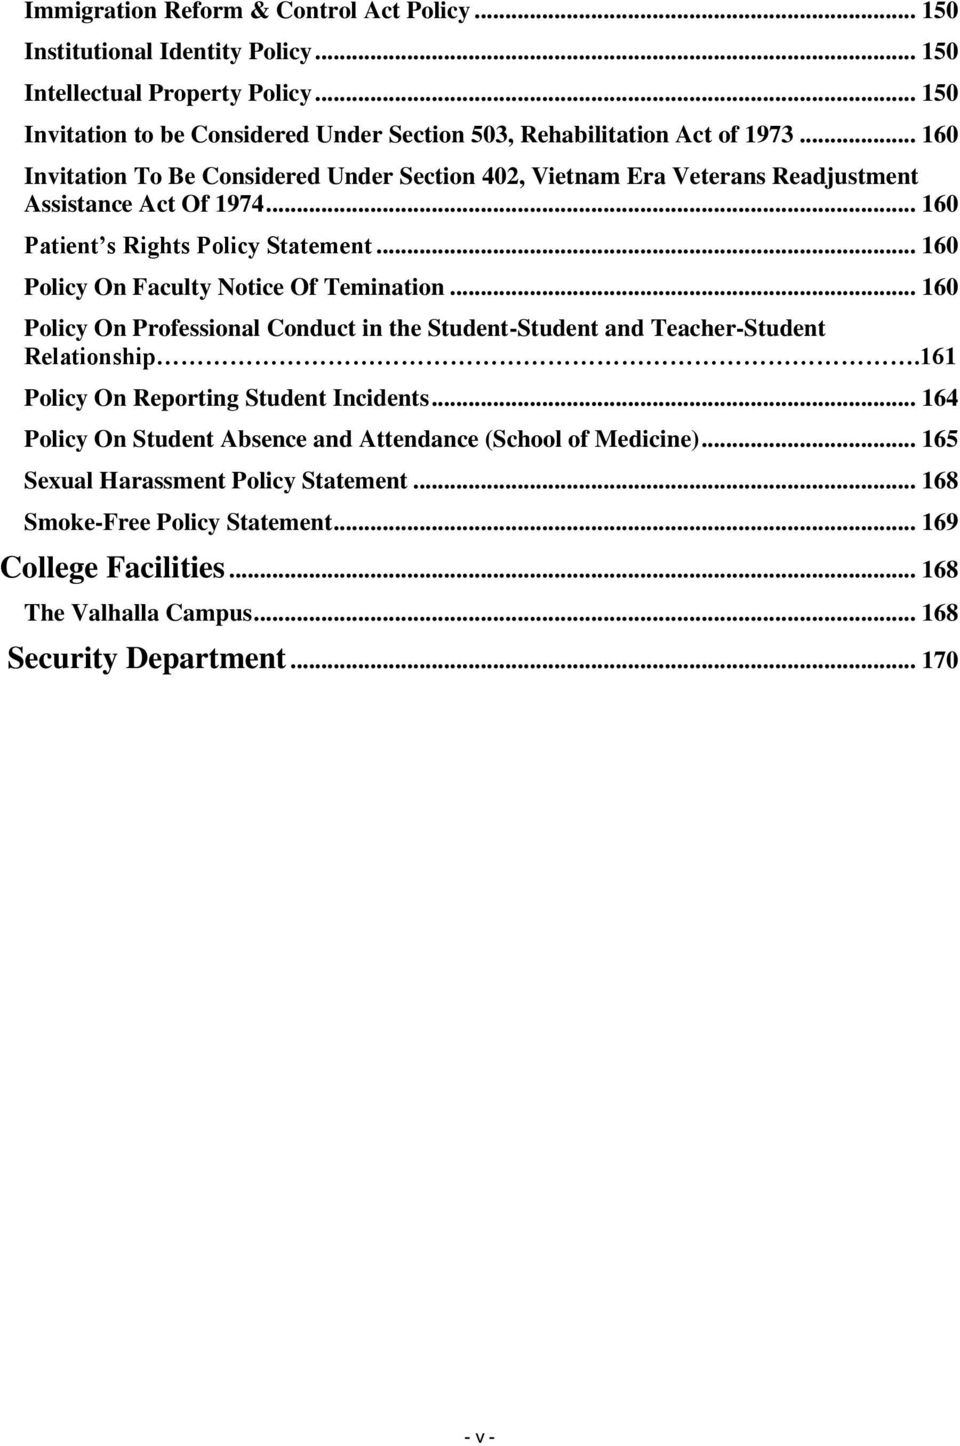 .. 160 Policy On Faculty Notice Of Temination... 160 Policy On Professional Conduct in the Student-Student and Teacher-Student Relationship.161 Policy On Reporting Student Incidents.